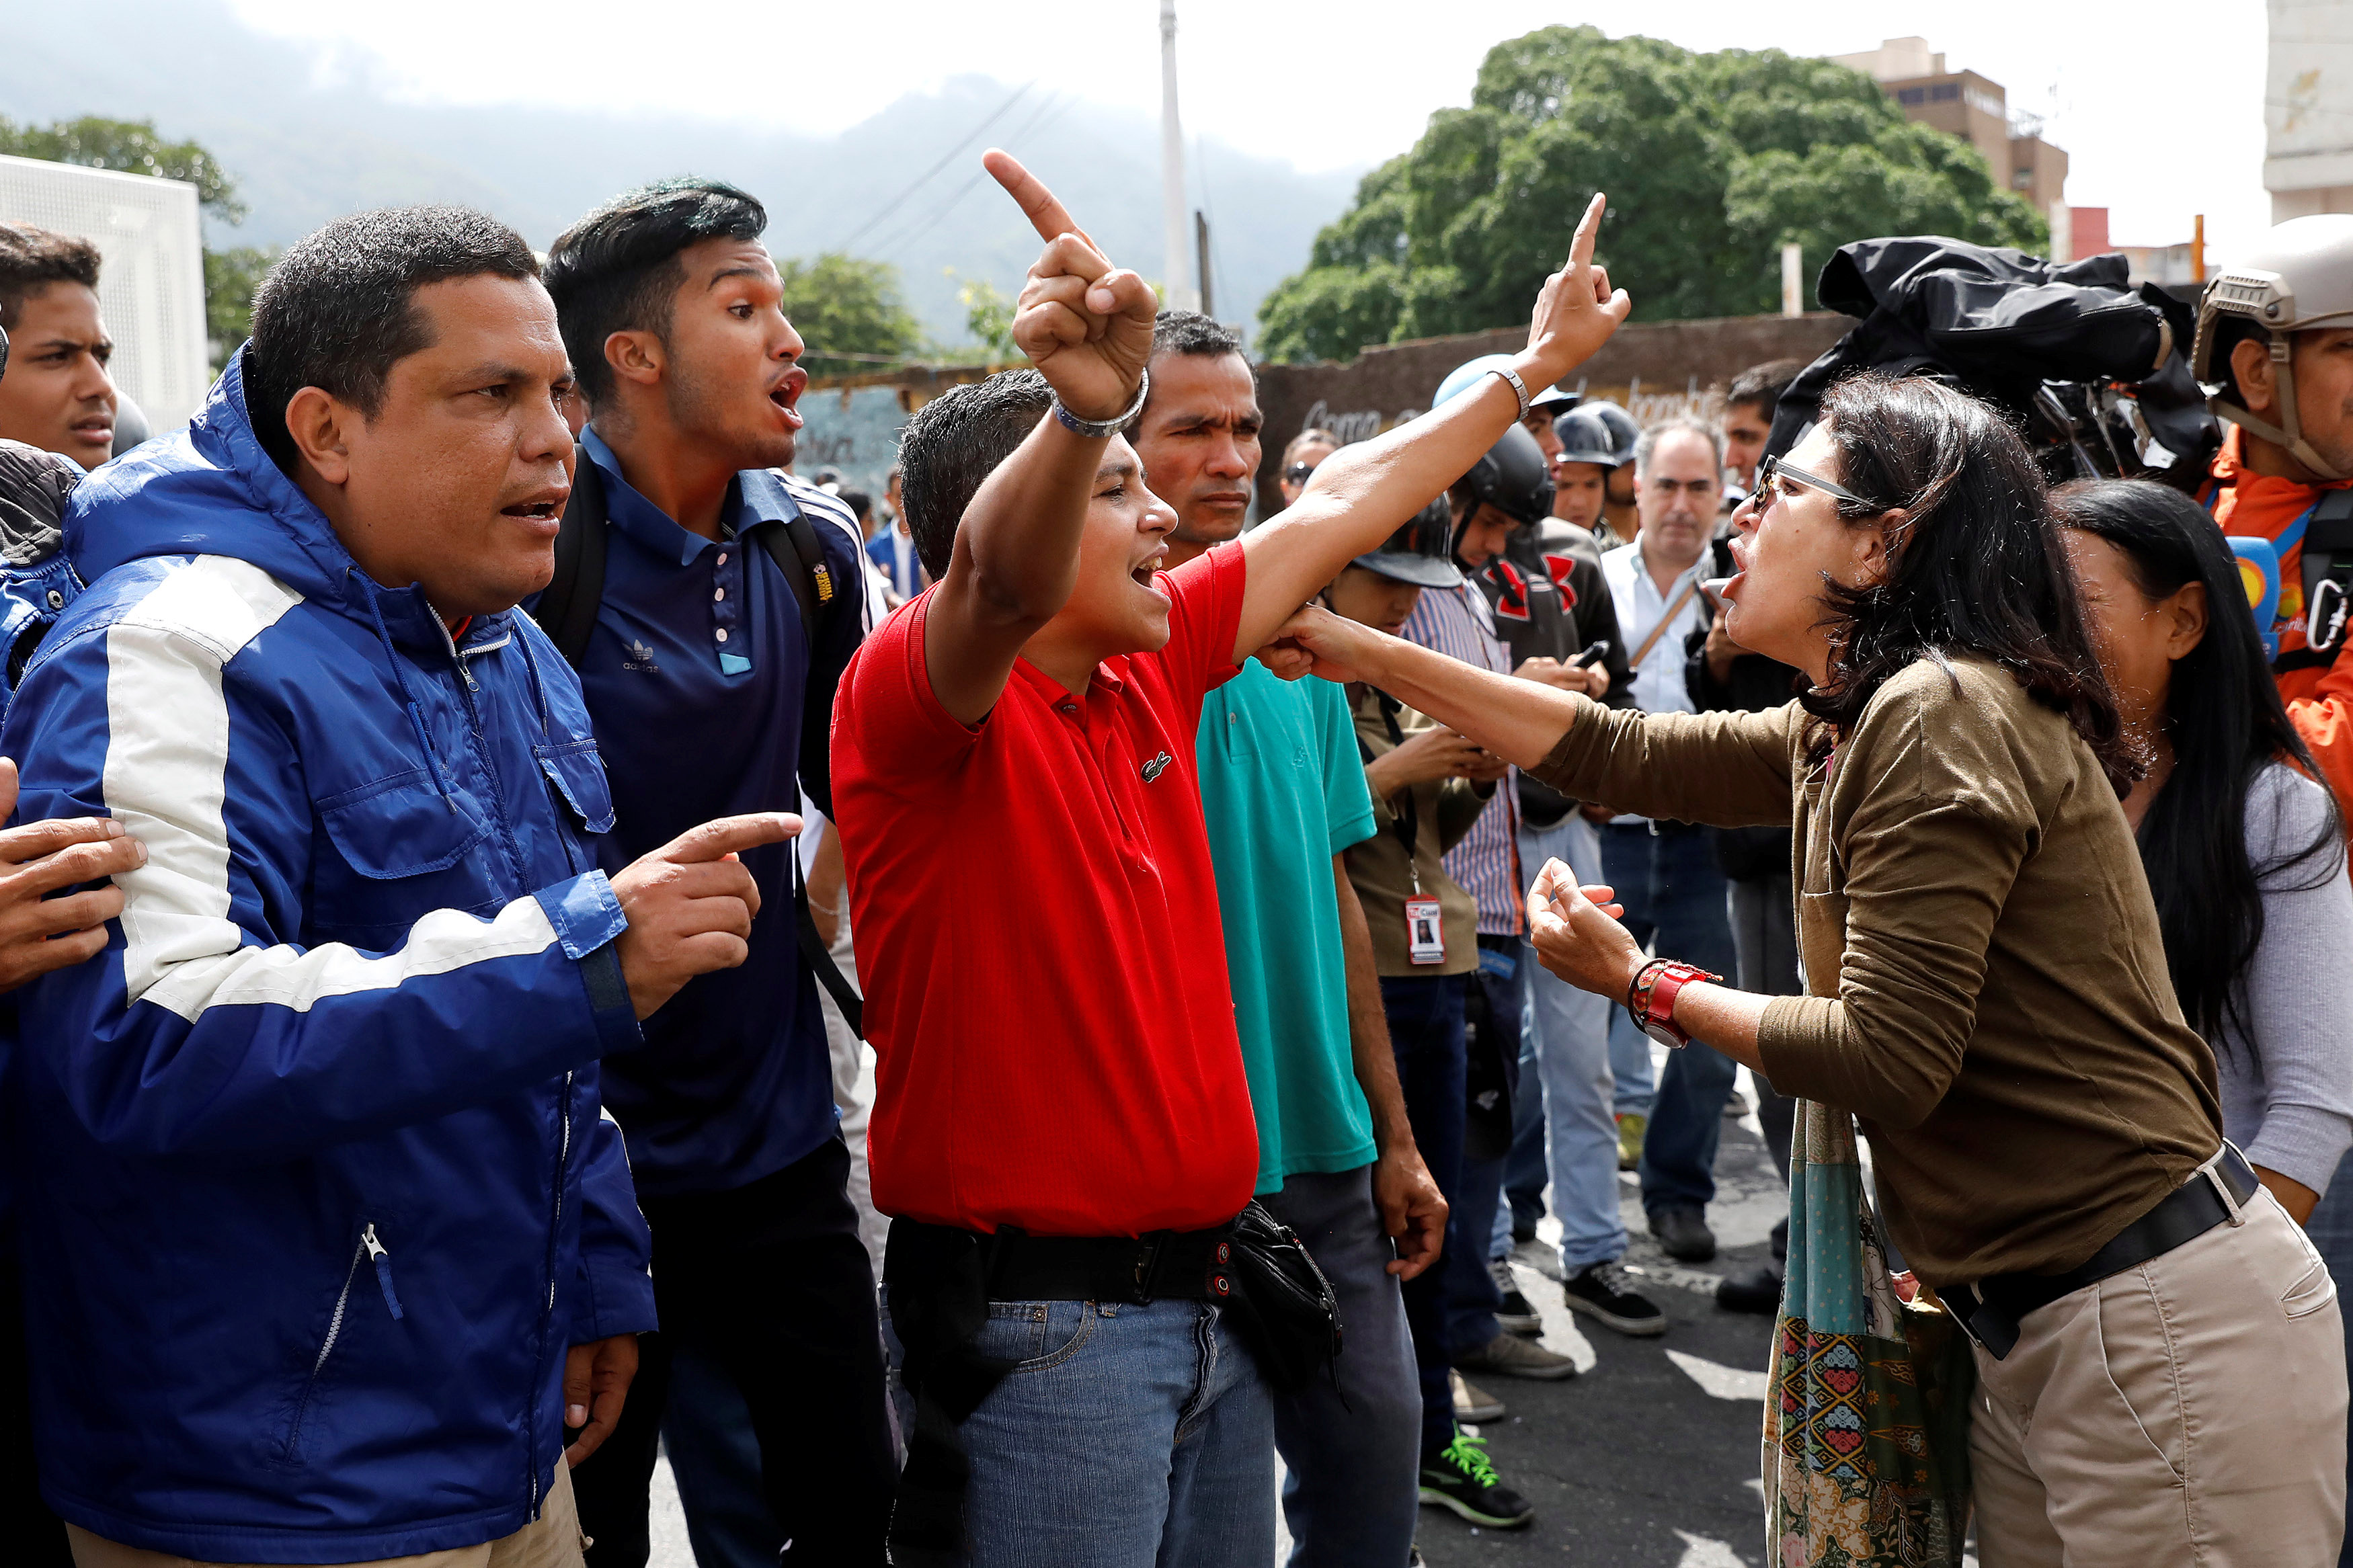 Opposition supporters and pro-government supporters clash near Supreme Justice Court headquarters during a rally against the National Constituent Assembly, which plans to reform the constitution in Caracas, Venezuela on June 12, 2017. (REUTERS/Carlos Garcia Rawlins)